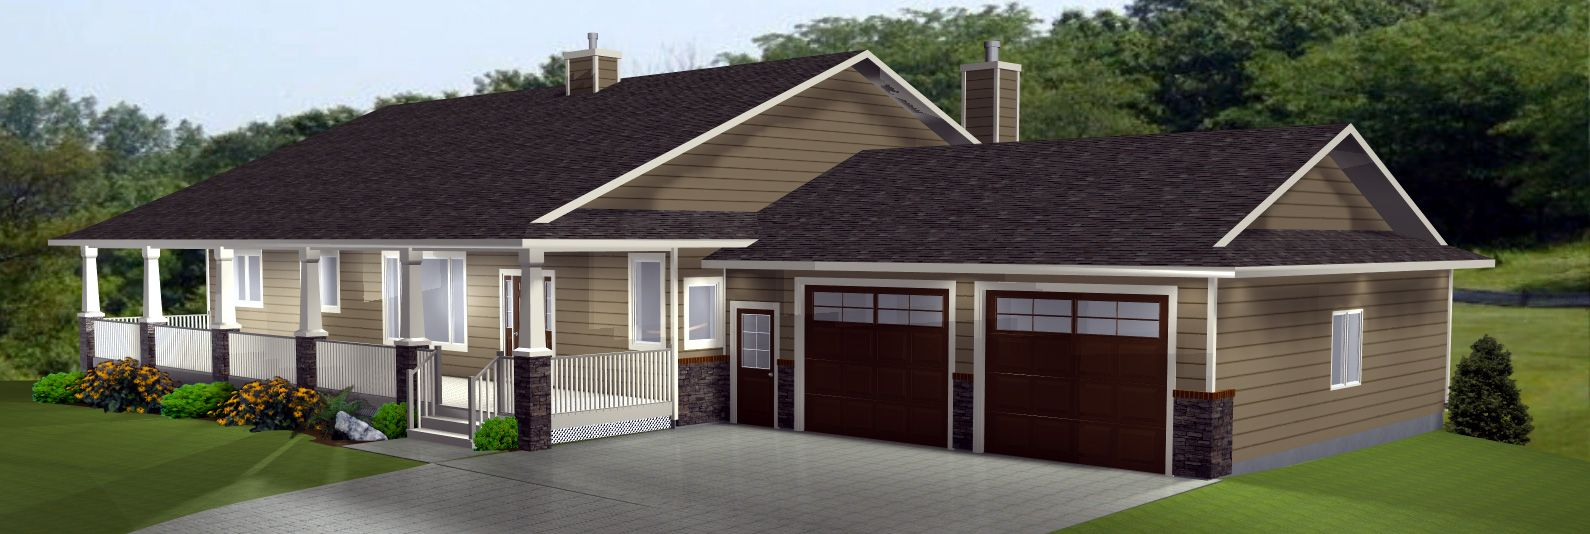 Ranch Home Plans With Basements